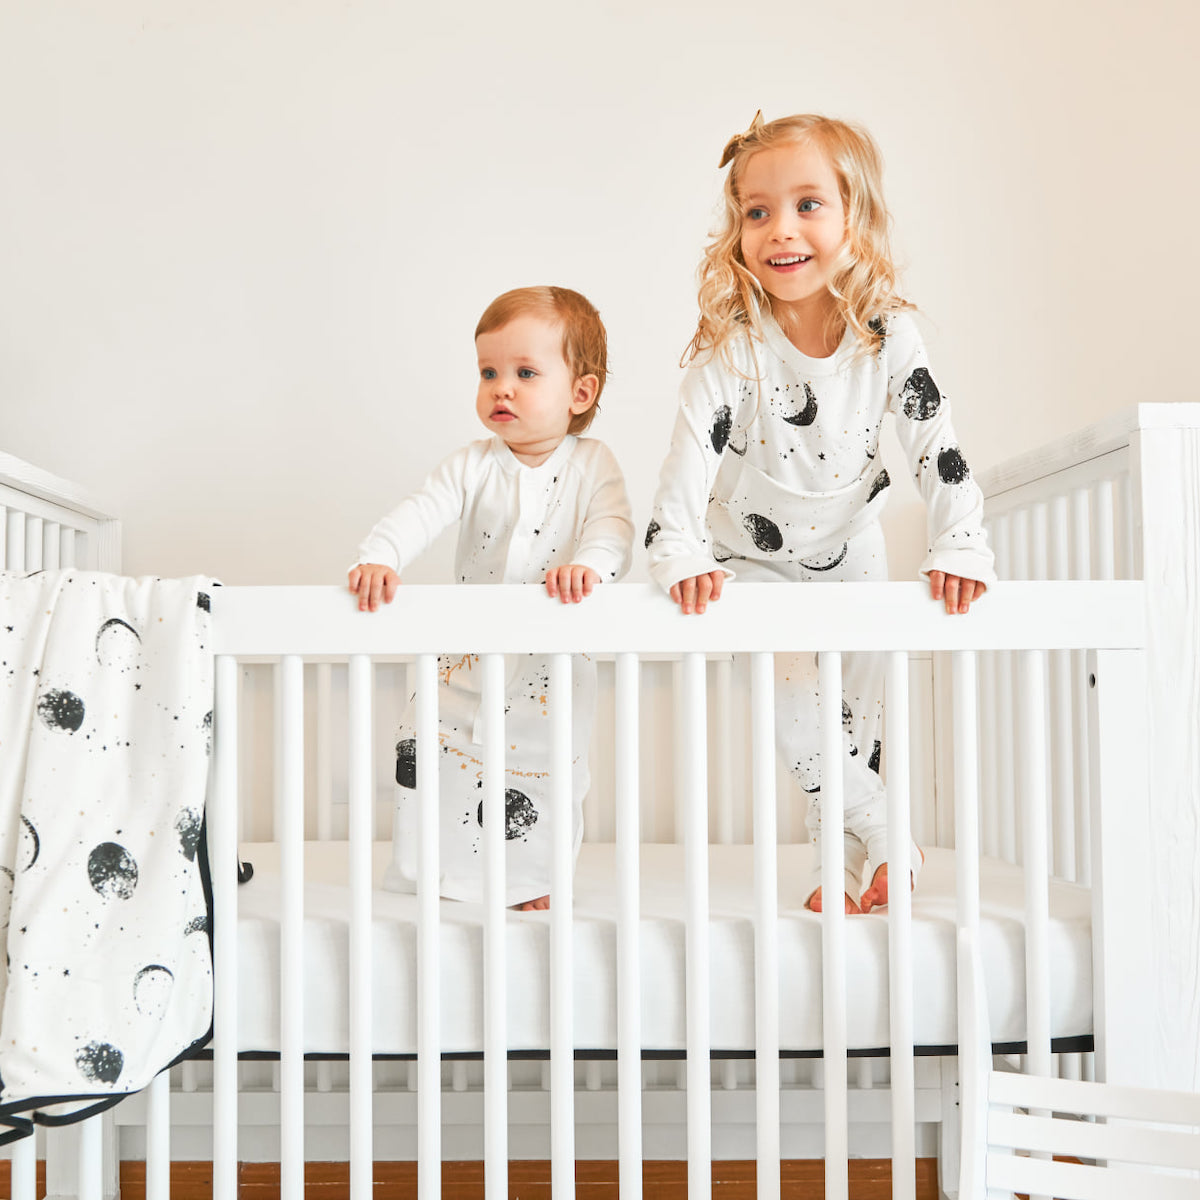 A baby and a young girl in a white Millk Street Baby crib.